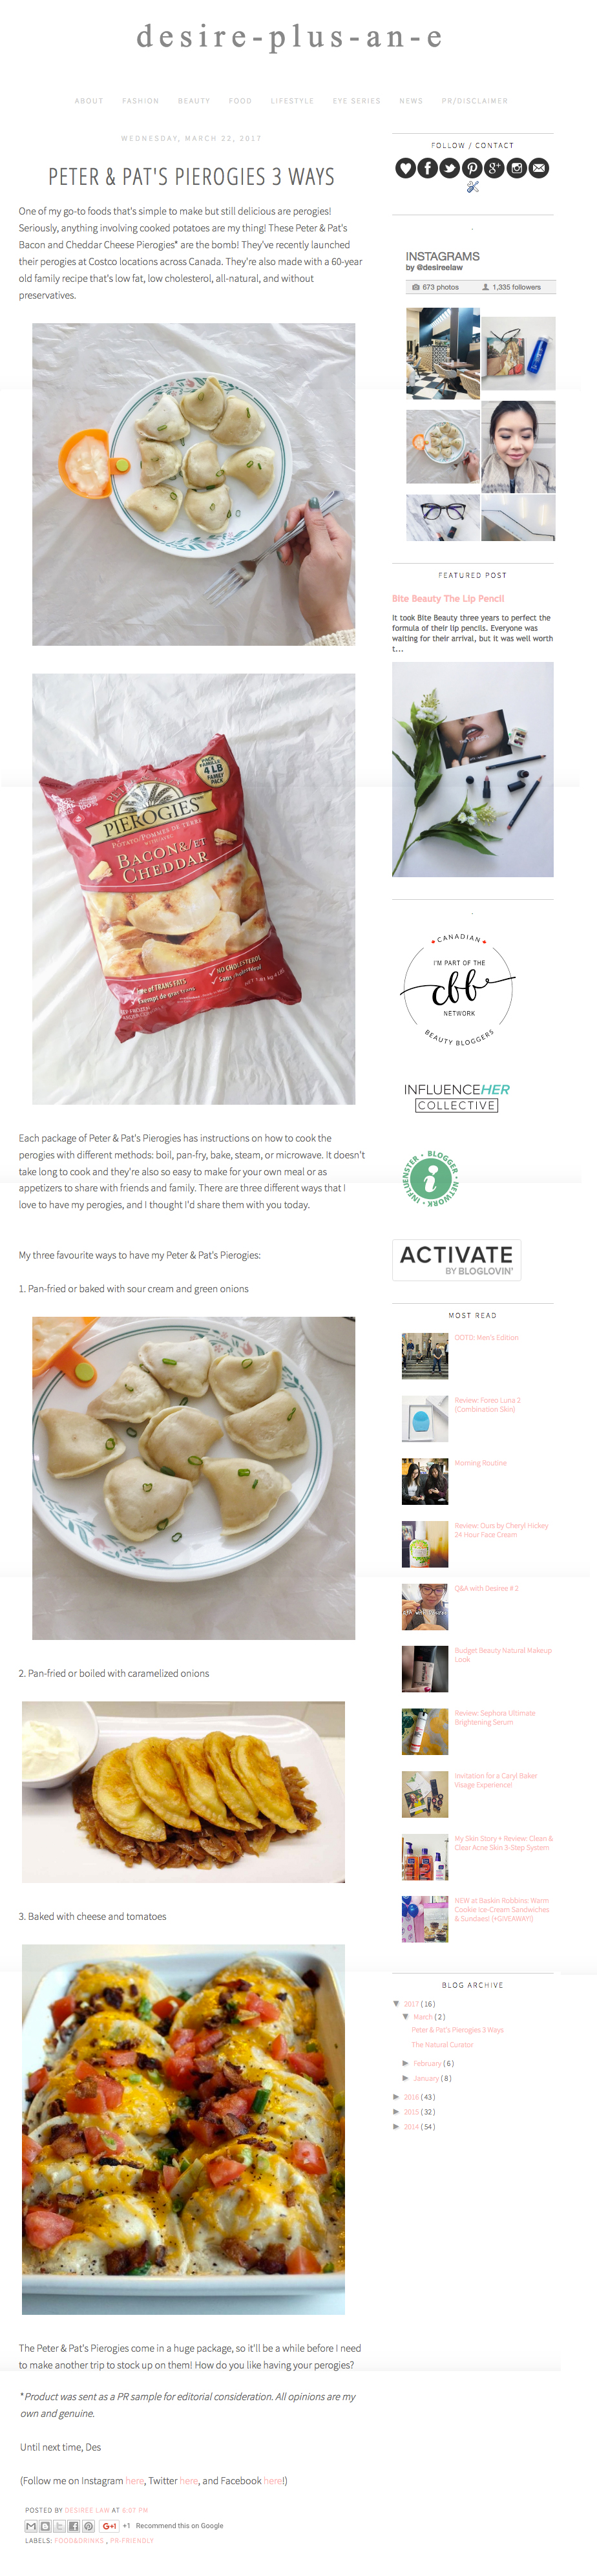 Peter & Pat's Pierogies featured in Desire-Plus-An-E. www.desireplusane.ca